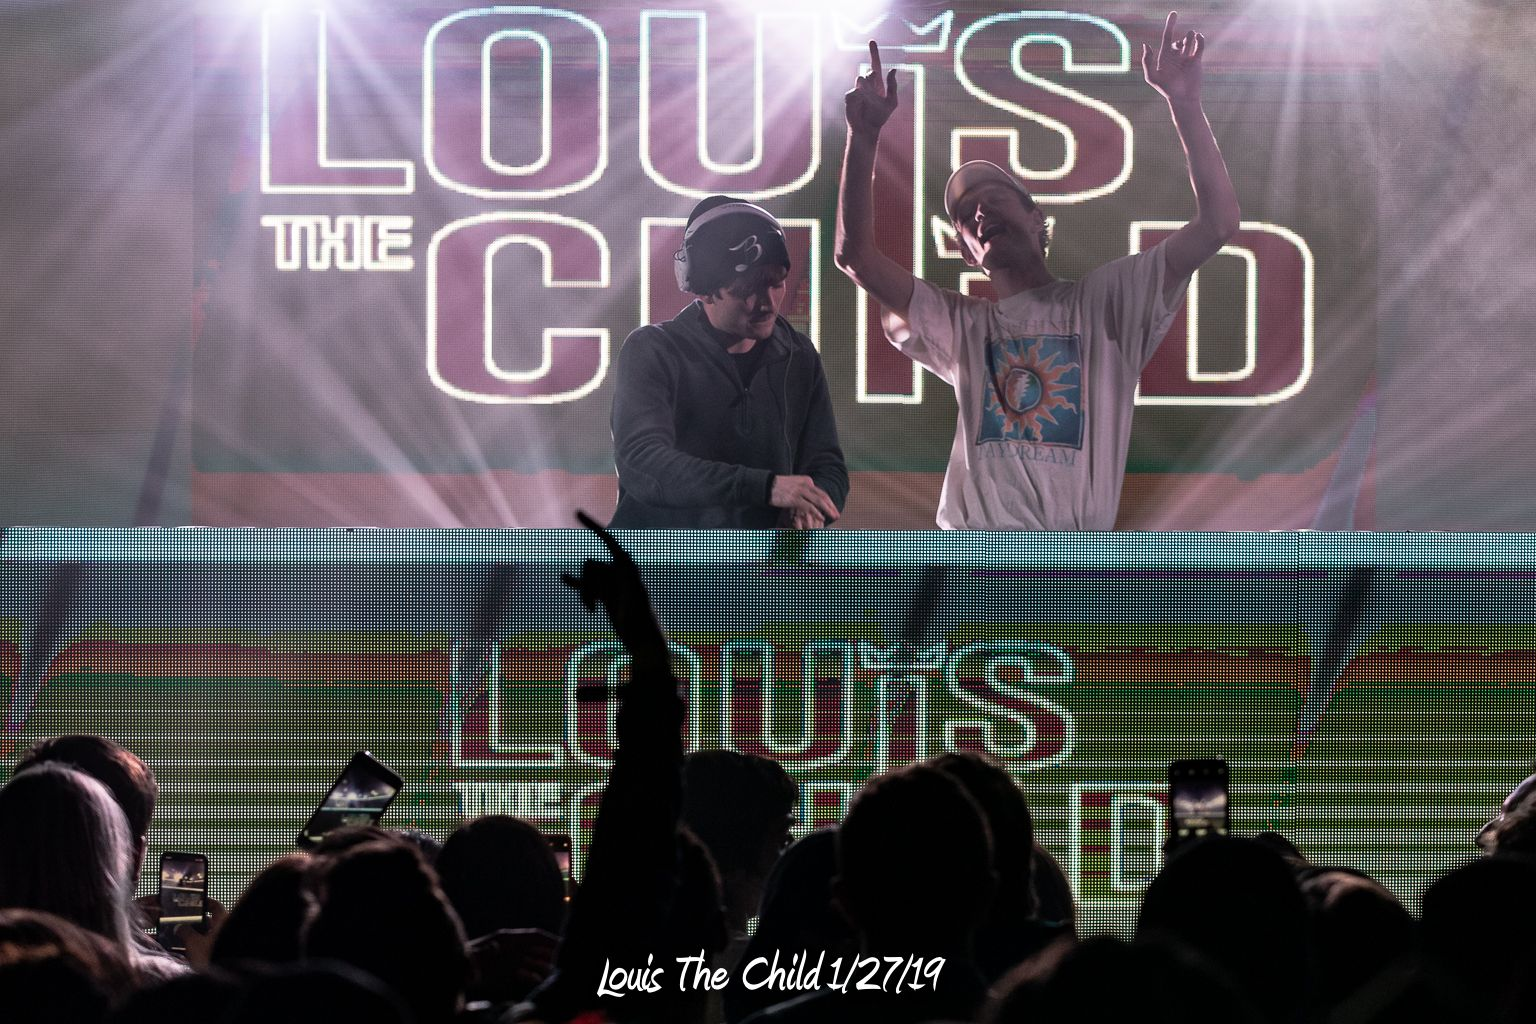 Louis The Child 1/27/19